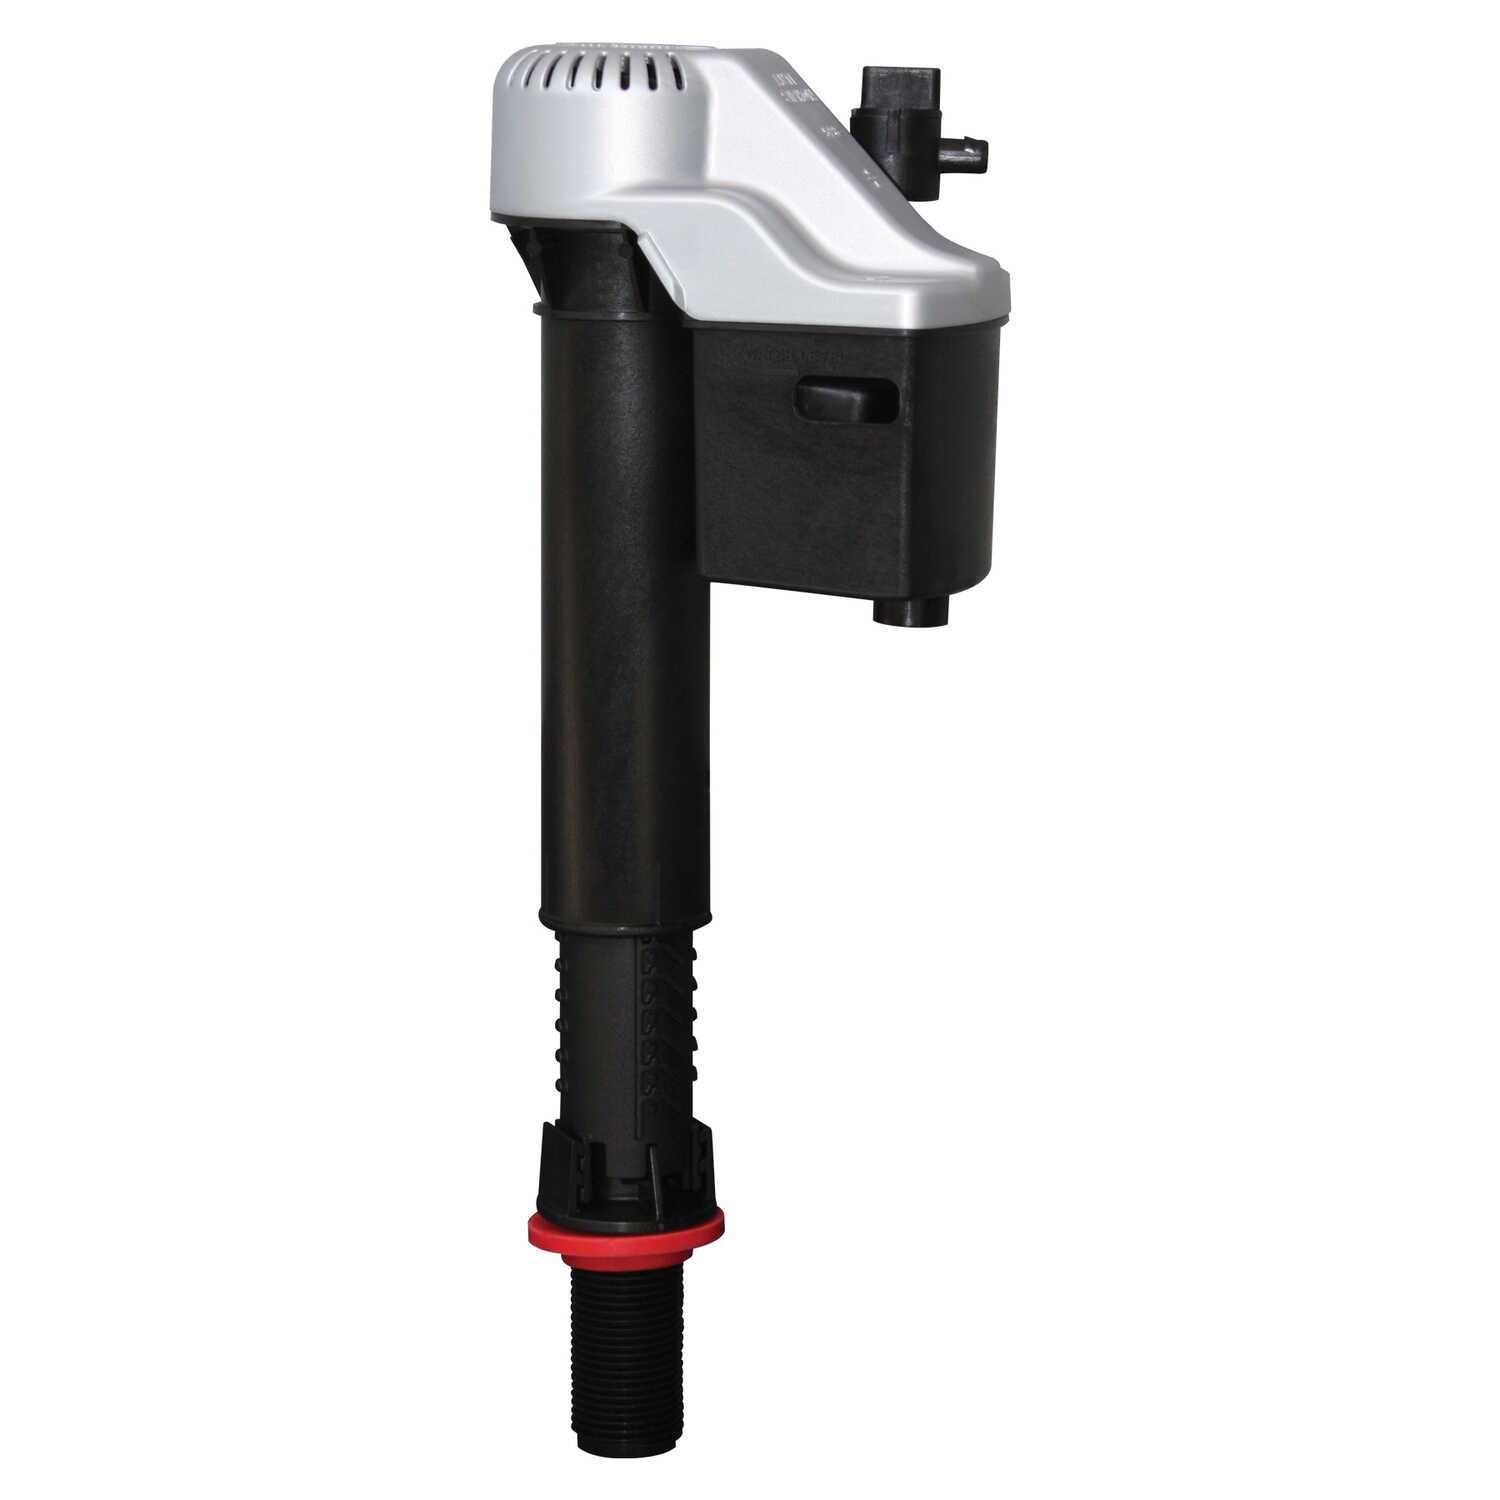 Korky Quietfill Platinum Toilet Fill Valve Ace Hardware